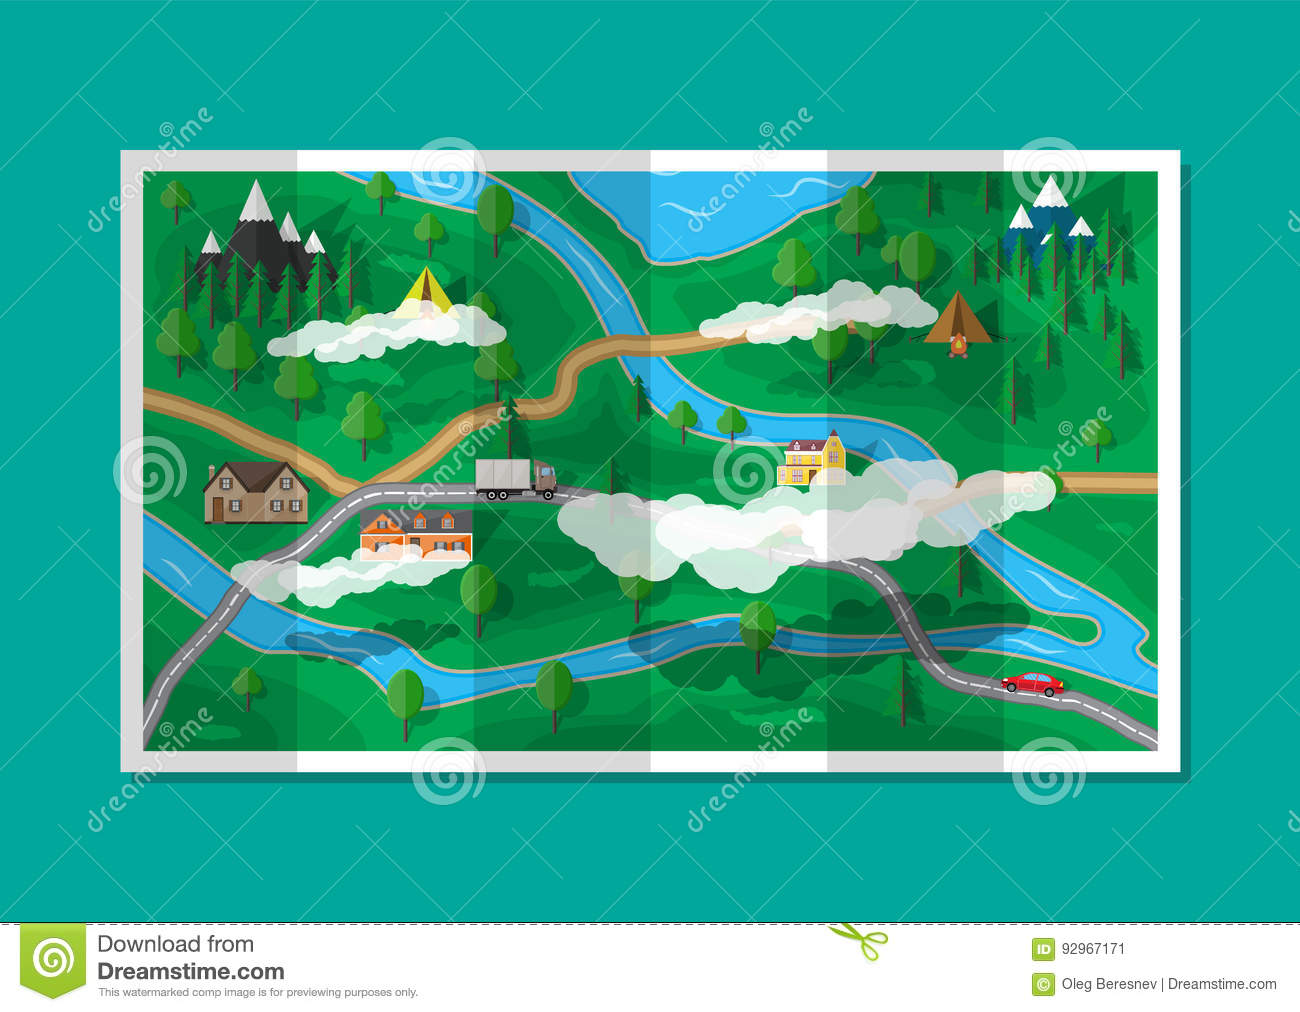 Suburban paper nature map gps and navigation stock vector suburban paper nature map gps and navigation gumiabroncs Image collections